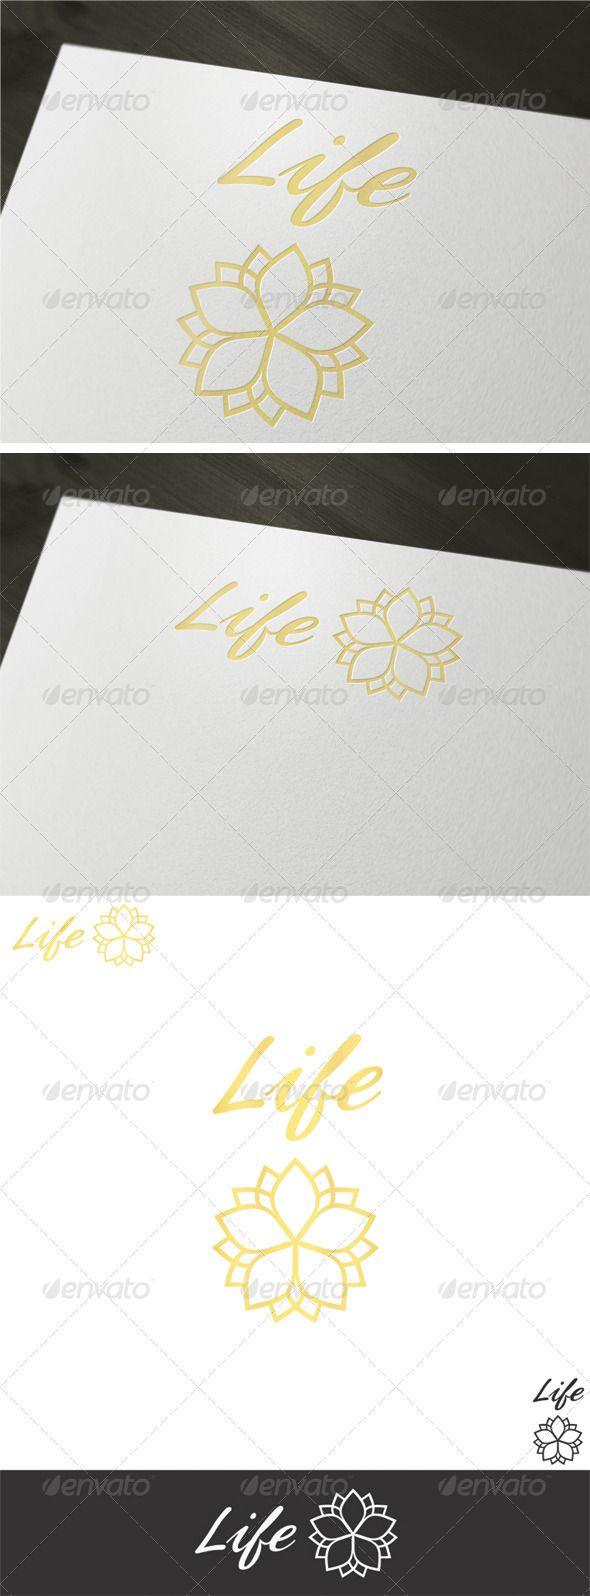 Life Logo Template #GraphicRiver A clean elegant logo design that can fit to any cosmetic, health care, businesses and companies. • Fully vector • Easy to edit text (link to free fonts included in help file) • CMYK at 300DPI • AI and EPS files • Download includes all styles shown in preview image should you need any further assistance, don't hesitate to contact me via email through my profile. Please take a moment to rate this item